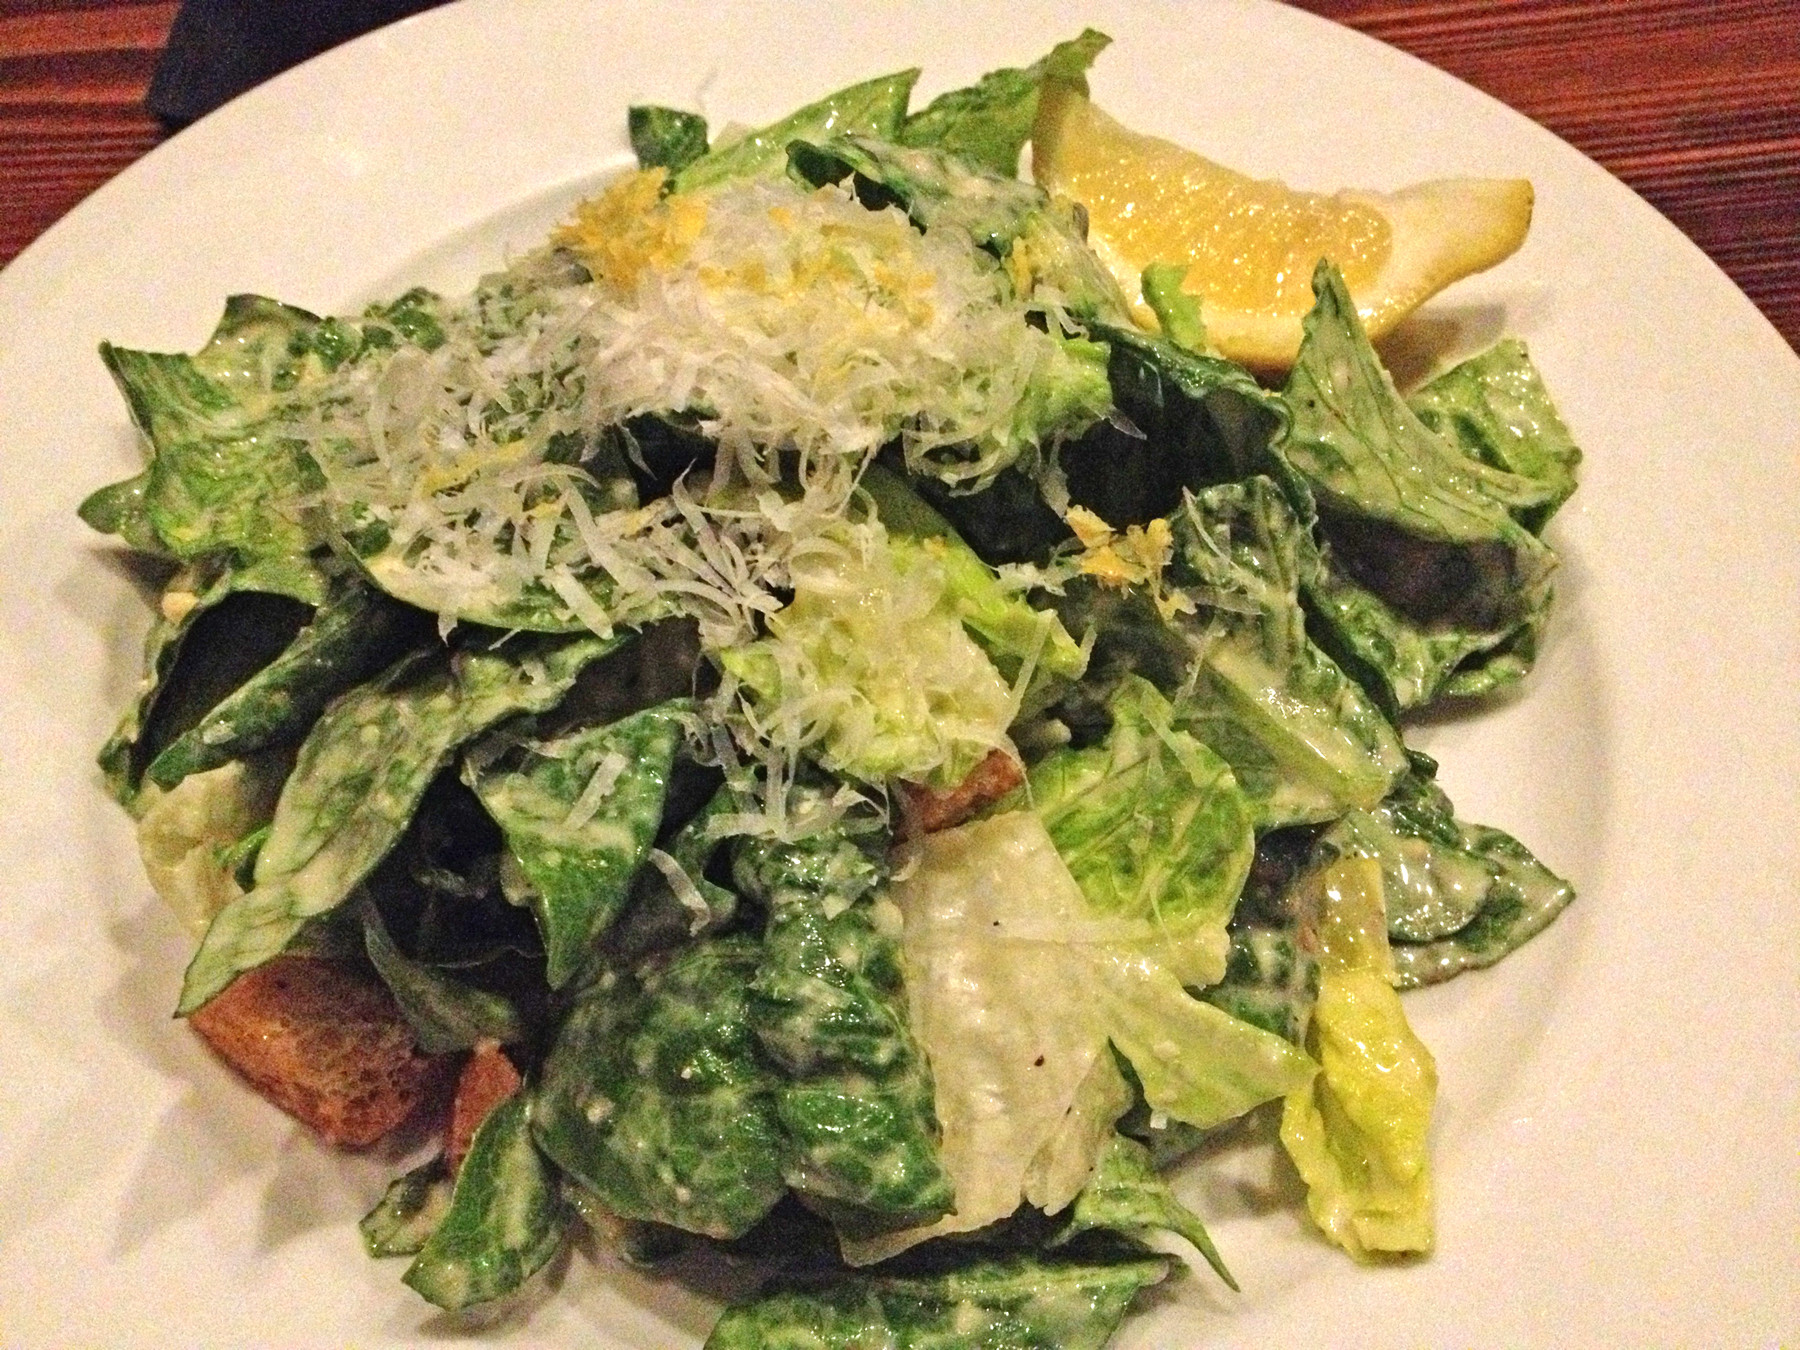 The Caesar salad is traditional with crisp Romaine, crunchy croutons, fresh parmesan and just the right amount of homemade dressing.